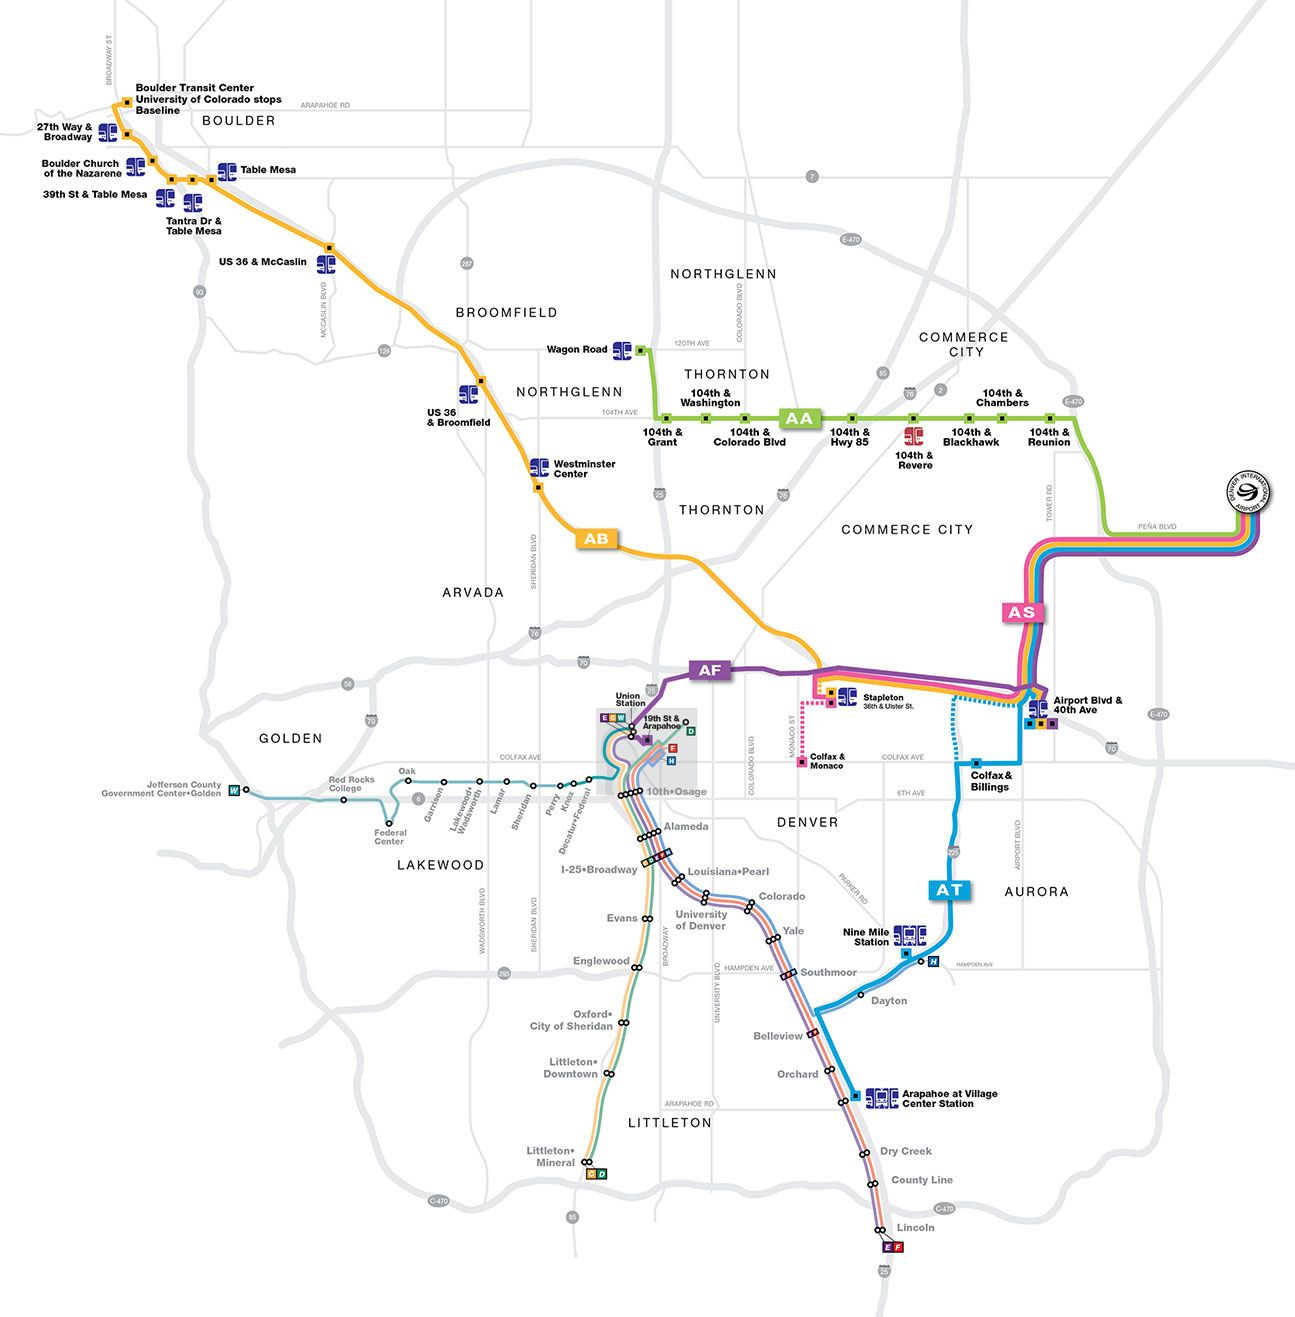 SkyRide for getting around Denver - take from airport to